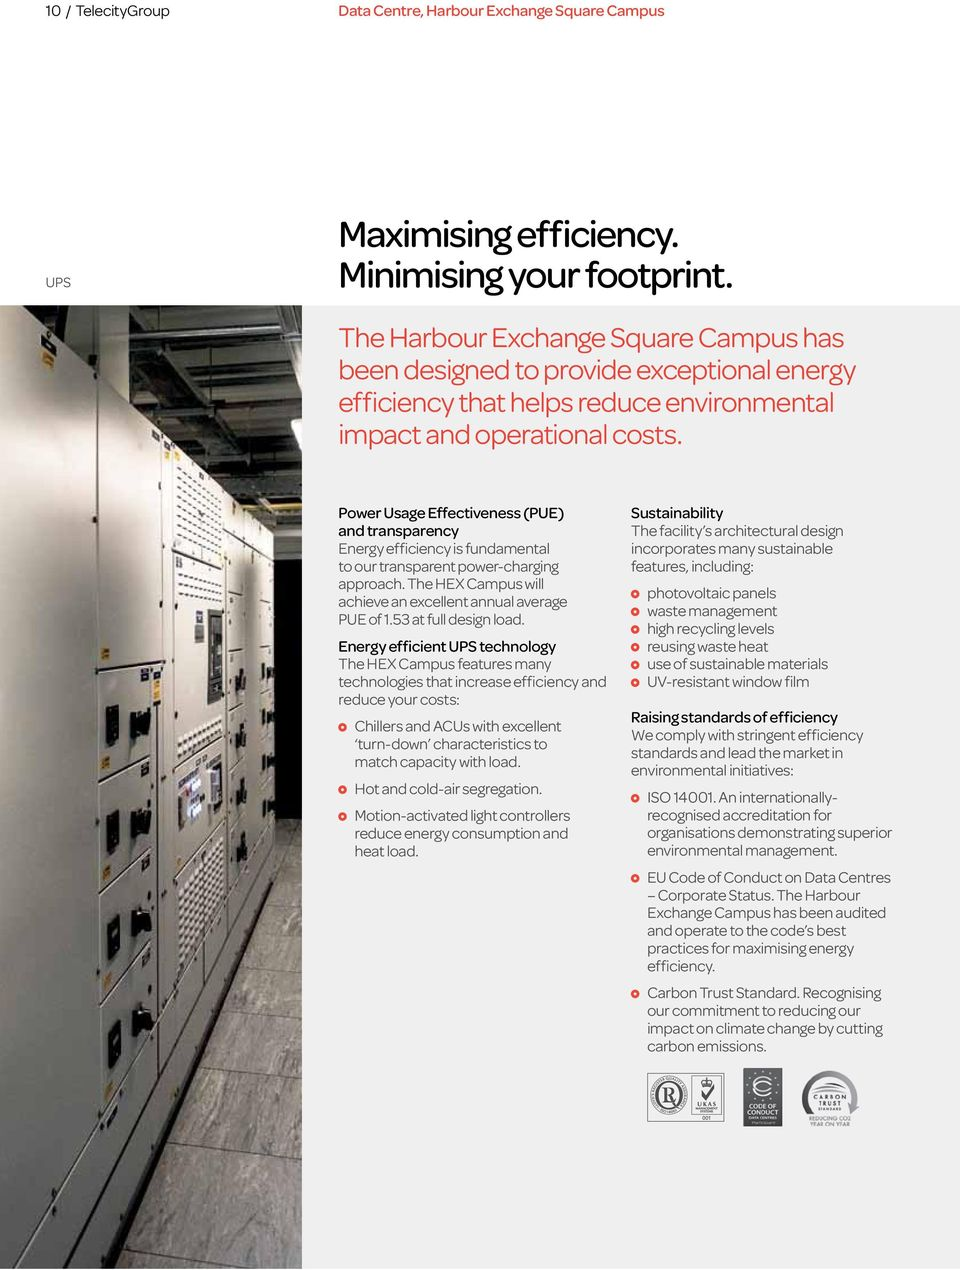 Power Usage Effectiveness (PUE) and transparency Energy efficiency is fundamental to our transparent power-charging approach. The HEX Campus will achieve an excellent annual average PUE of 1.